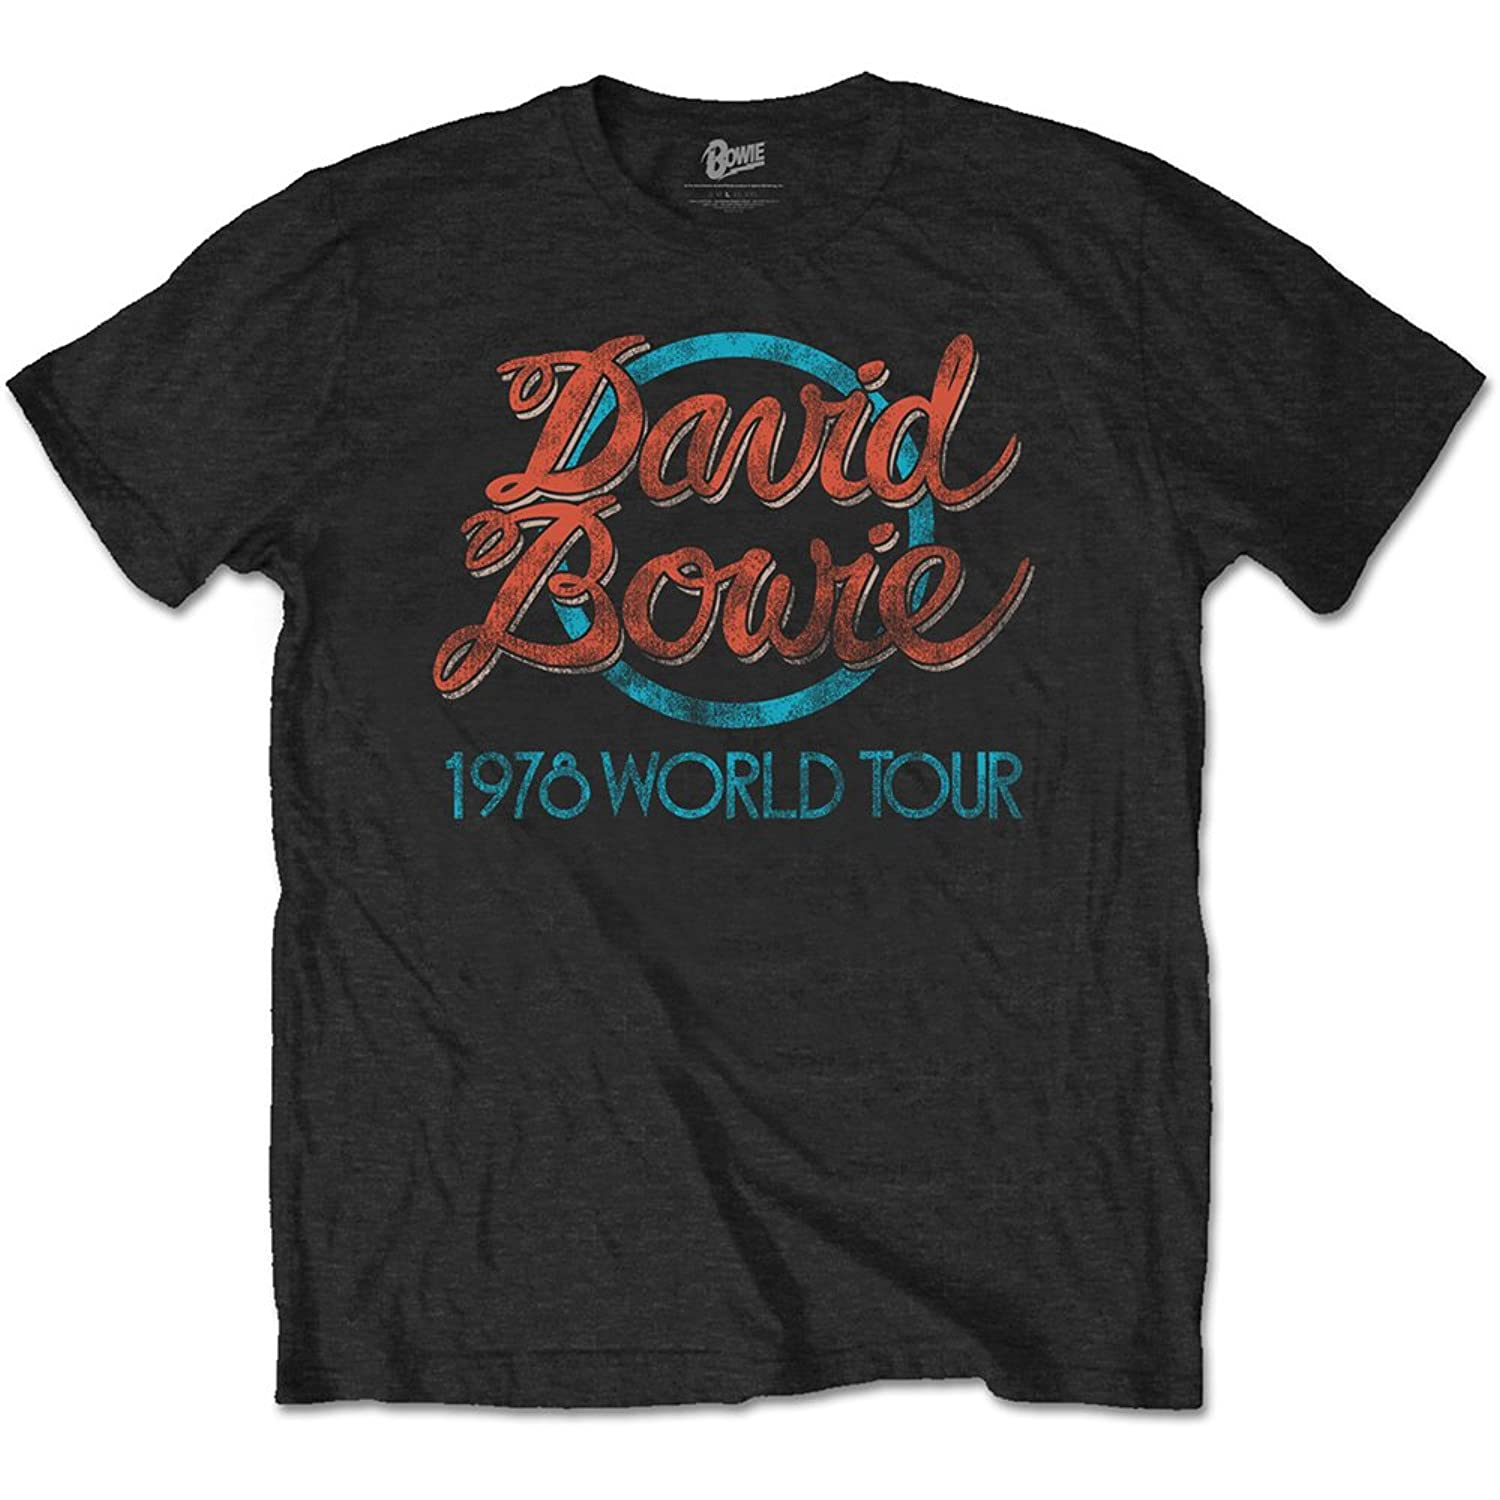 Camiseta David Bowie 78 Tour (Negro) low-cost - dynamicdirect.com